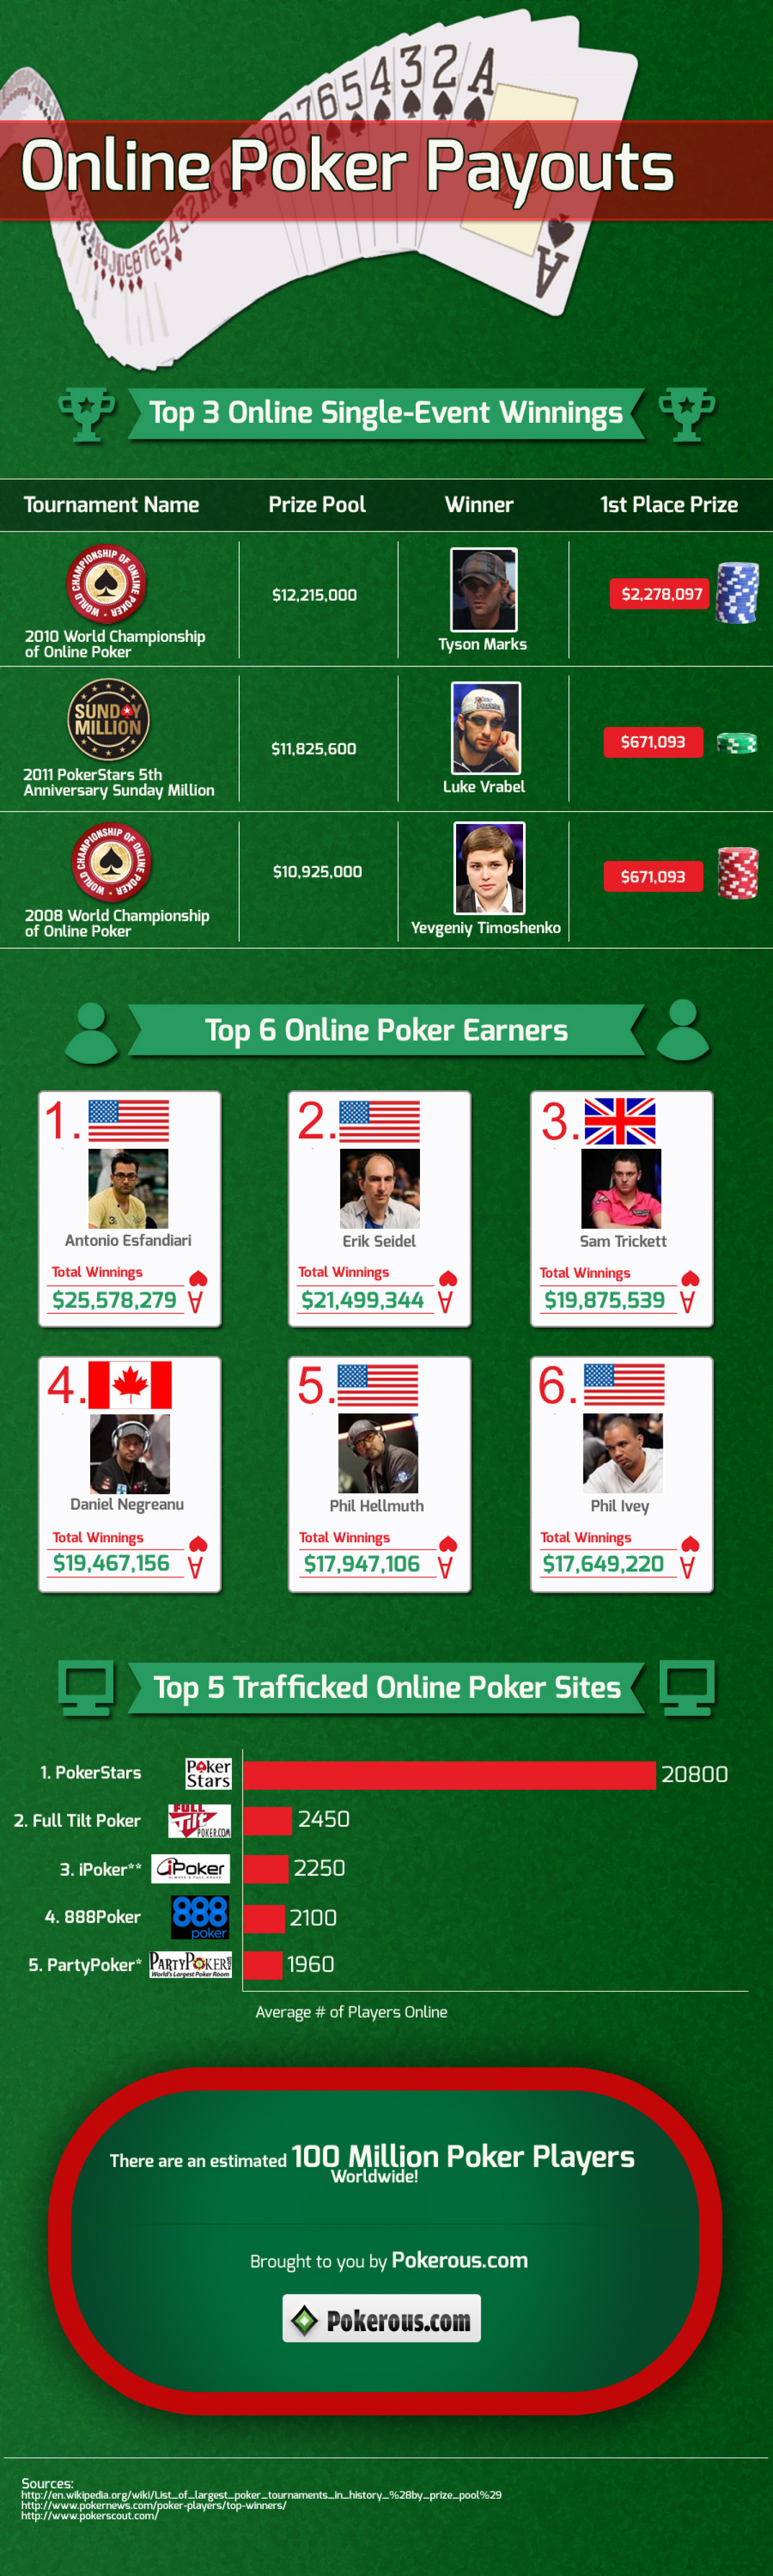 Online Poker Payouts Infographic